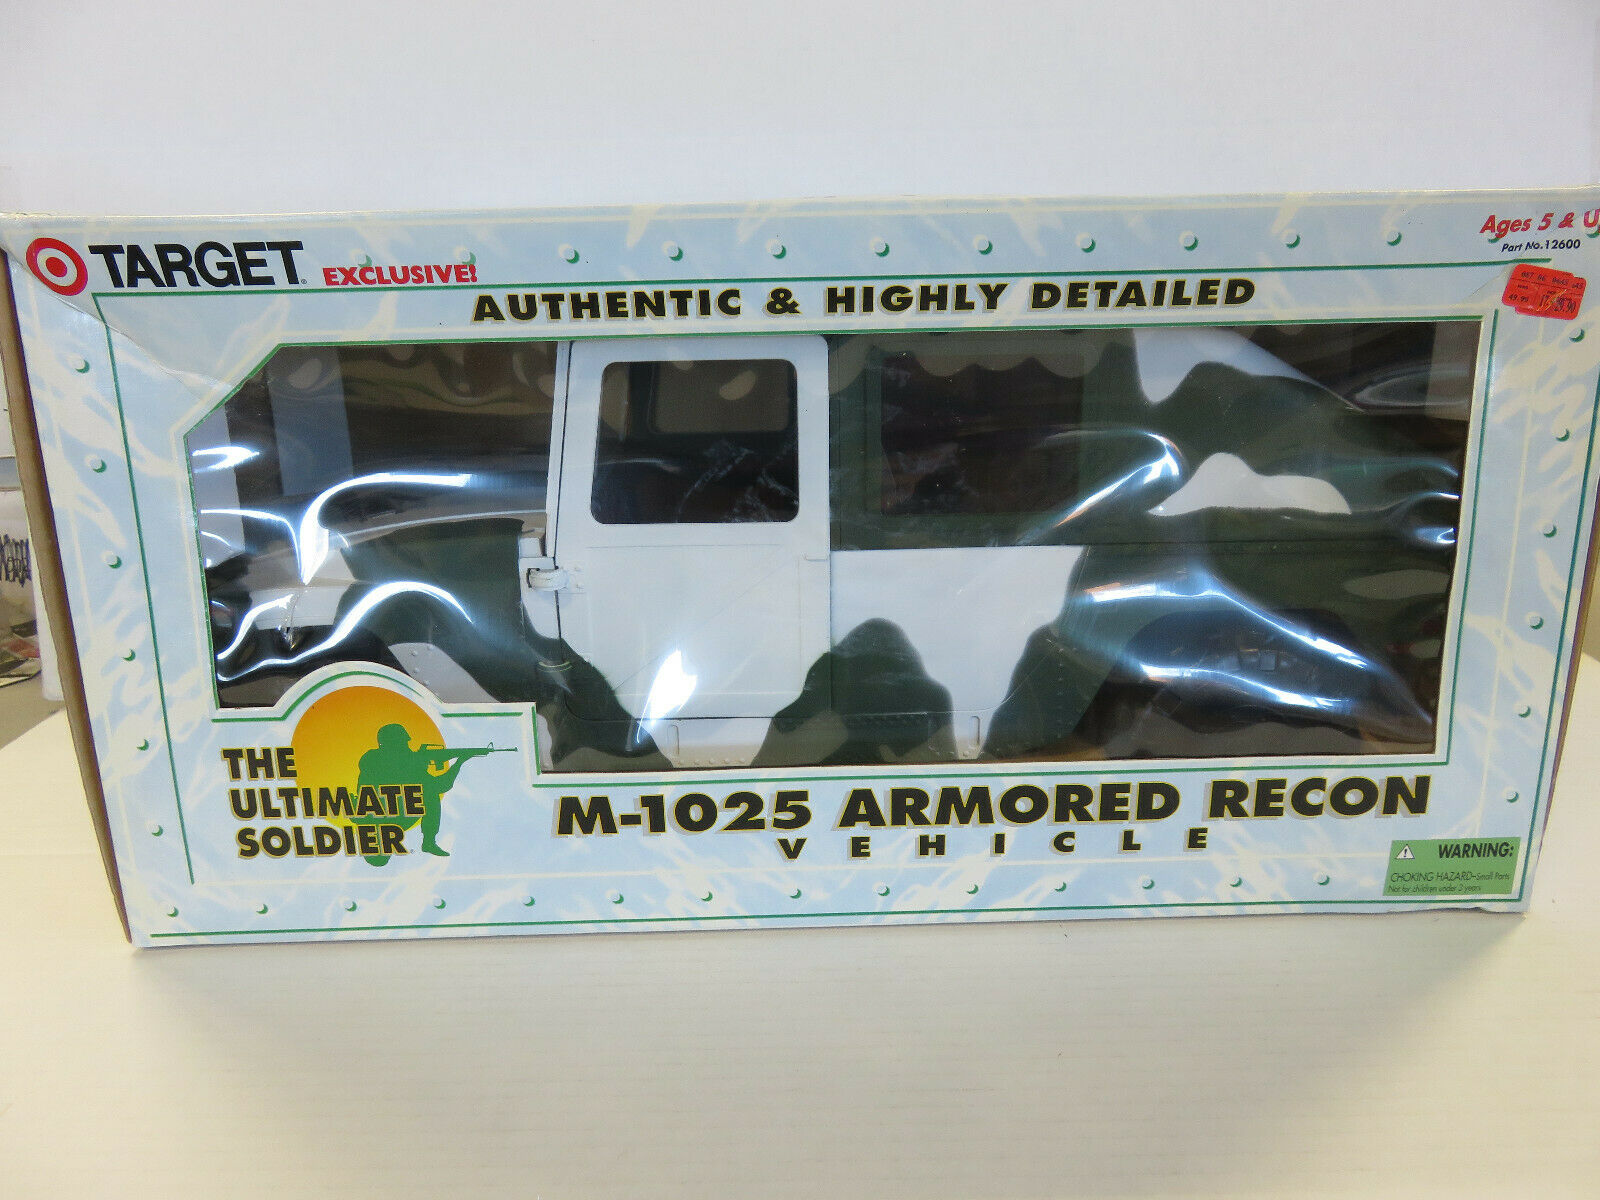 The Ultimate Soldier-M-1025 Armoruge Recon véhicule-Target EXCLUSIVE - 1998